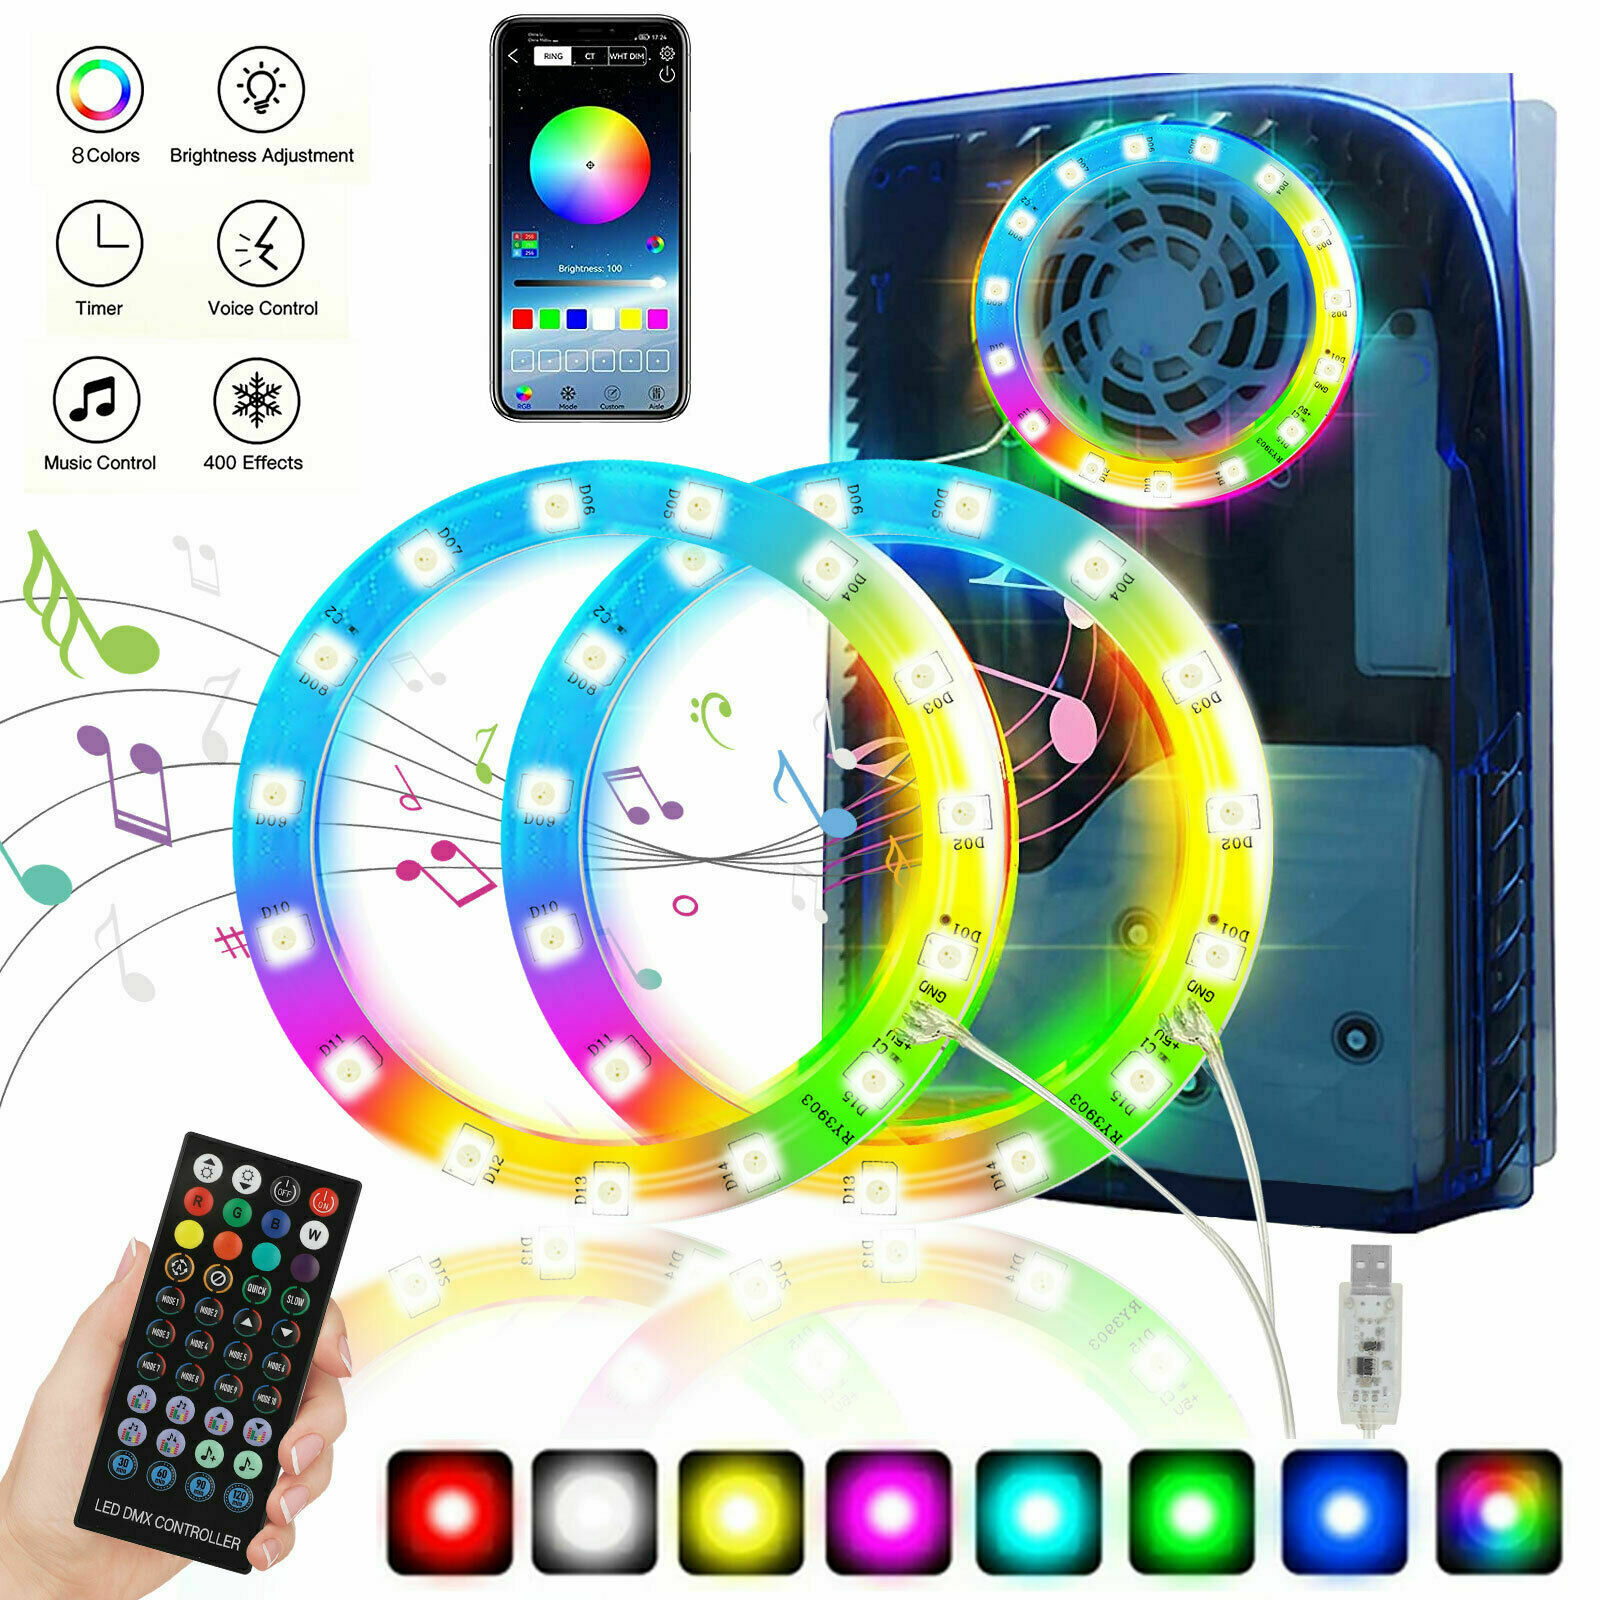 8 Colors LED Light Strip 5050 RGB Lights Sync Music 400 Effects for PS5 Console